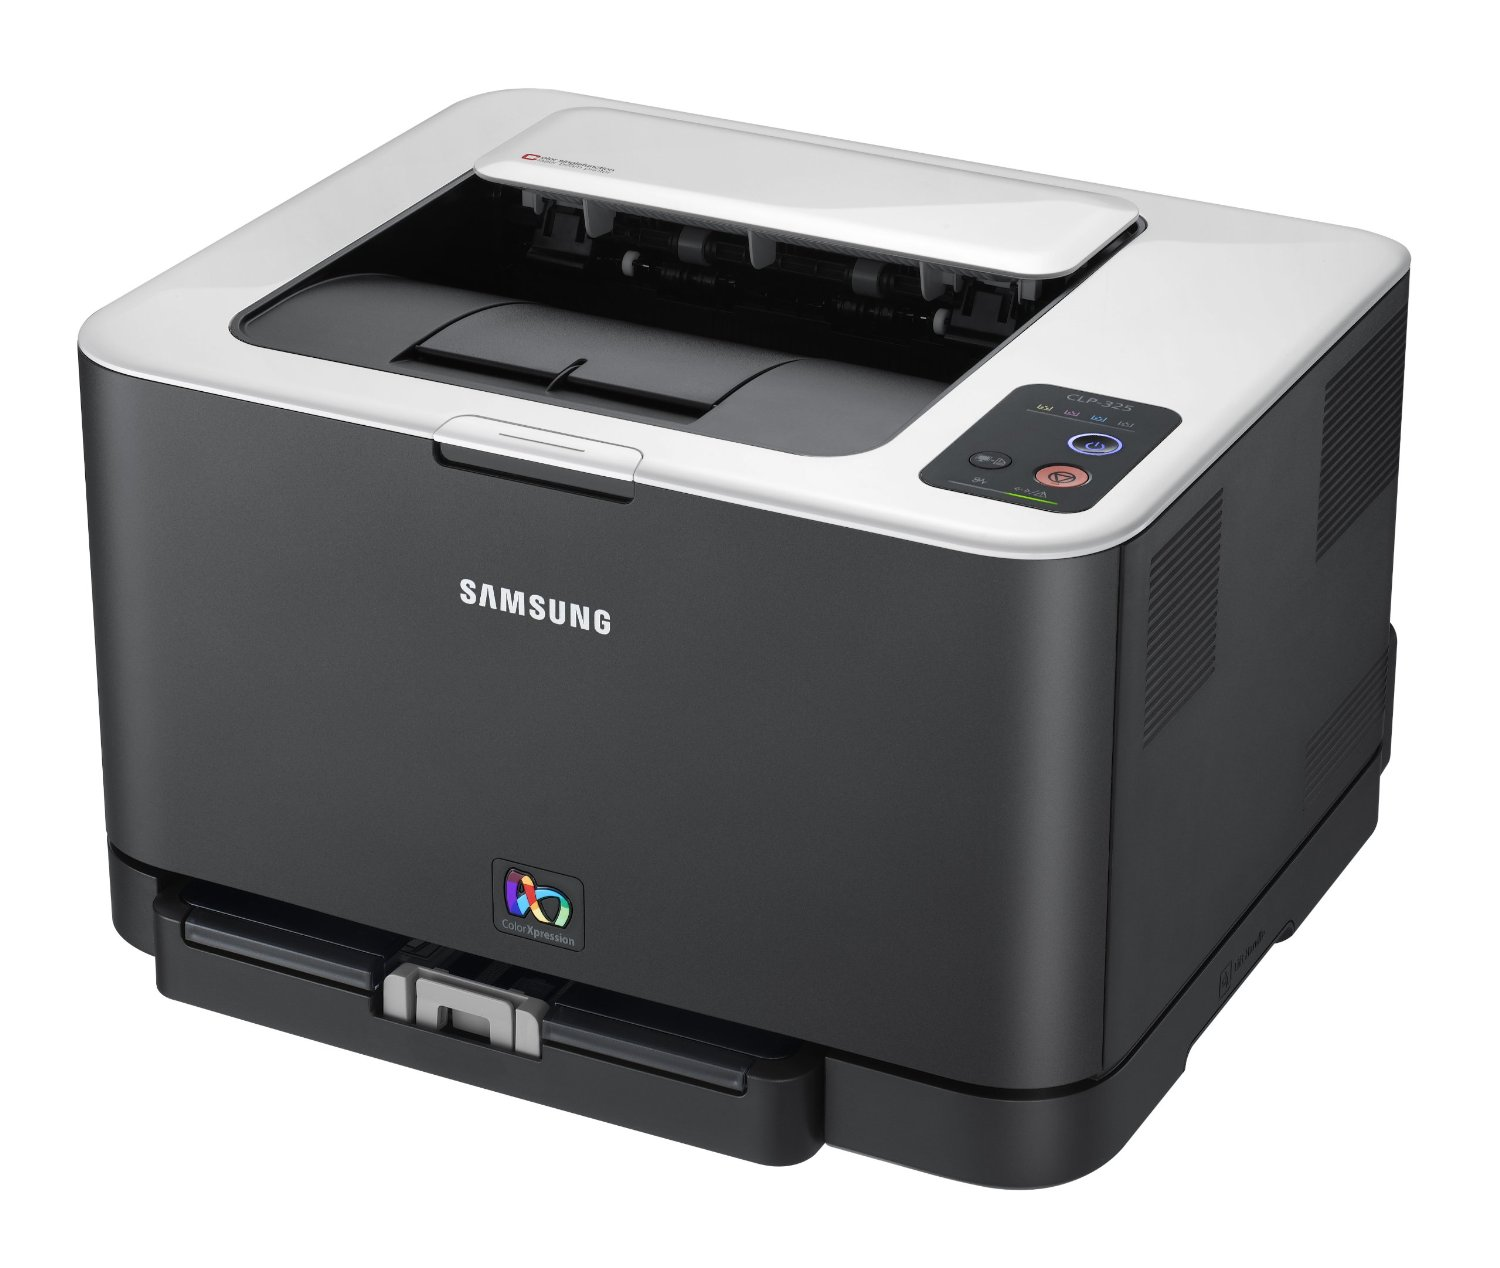 SAMSUNG CLP-320 WINDOWS 7 64BIT DRIVER DOWNLOAD